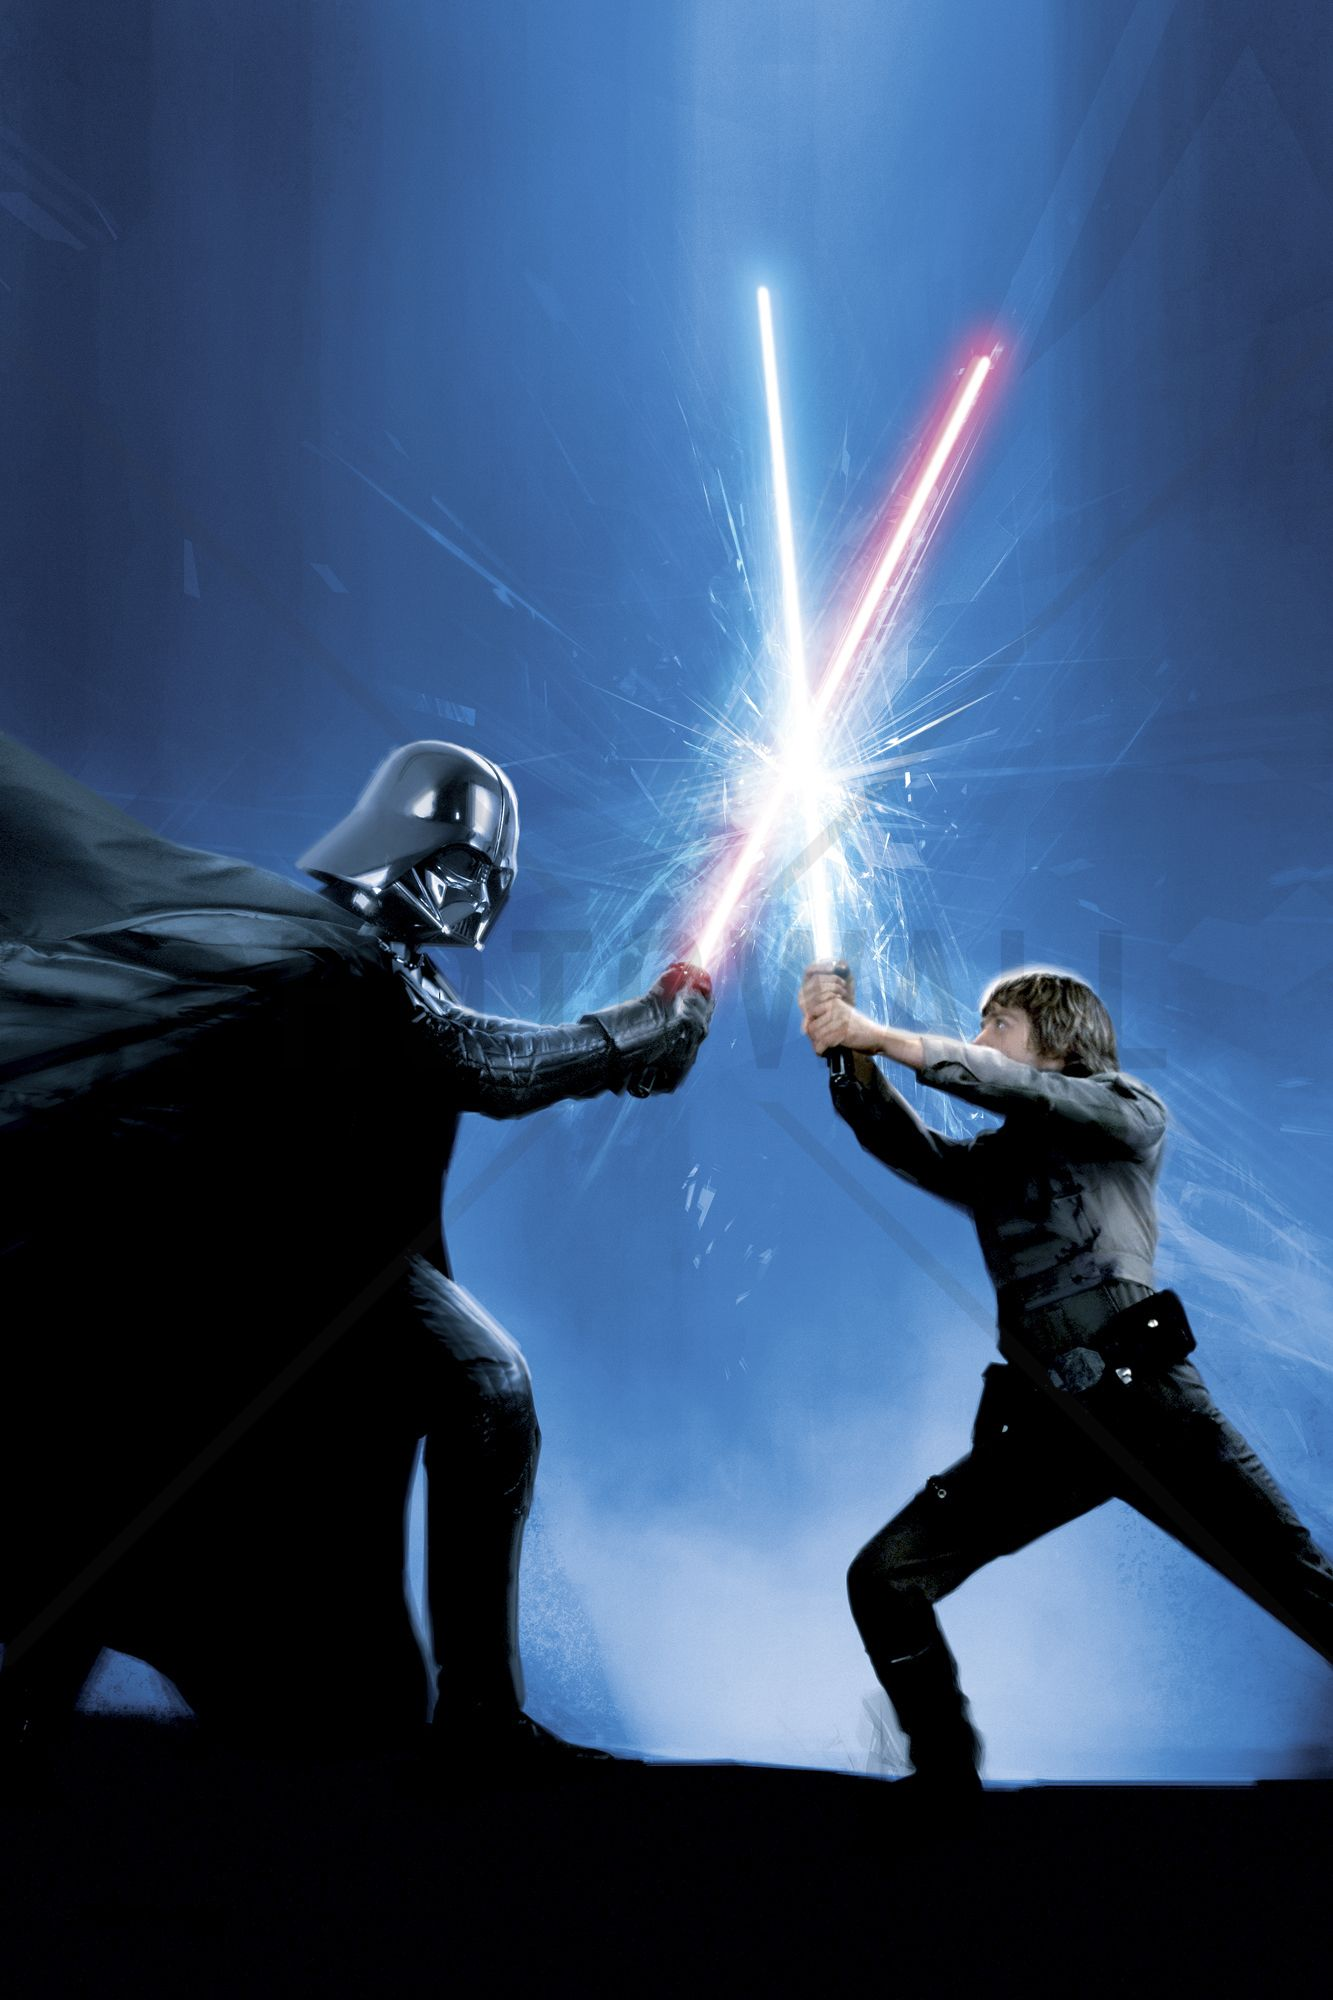 Star Wars Darth Vader And Luke Skywalker Wall Mural Photo